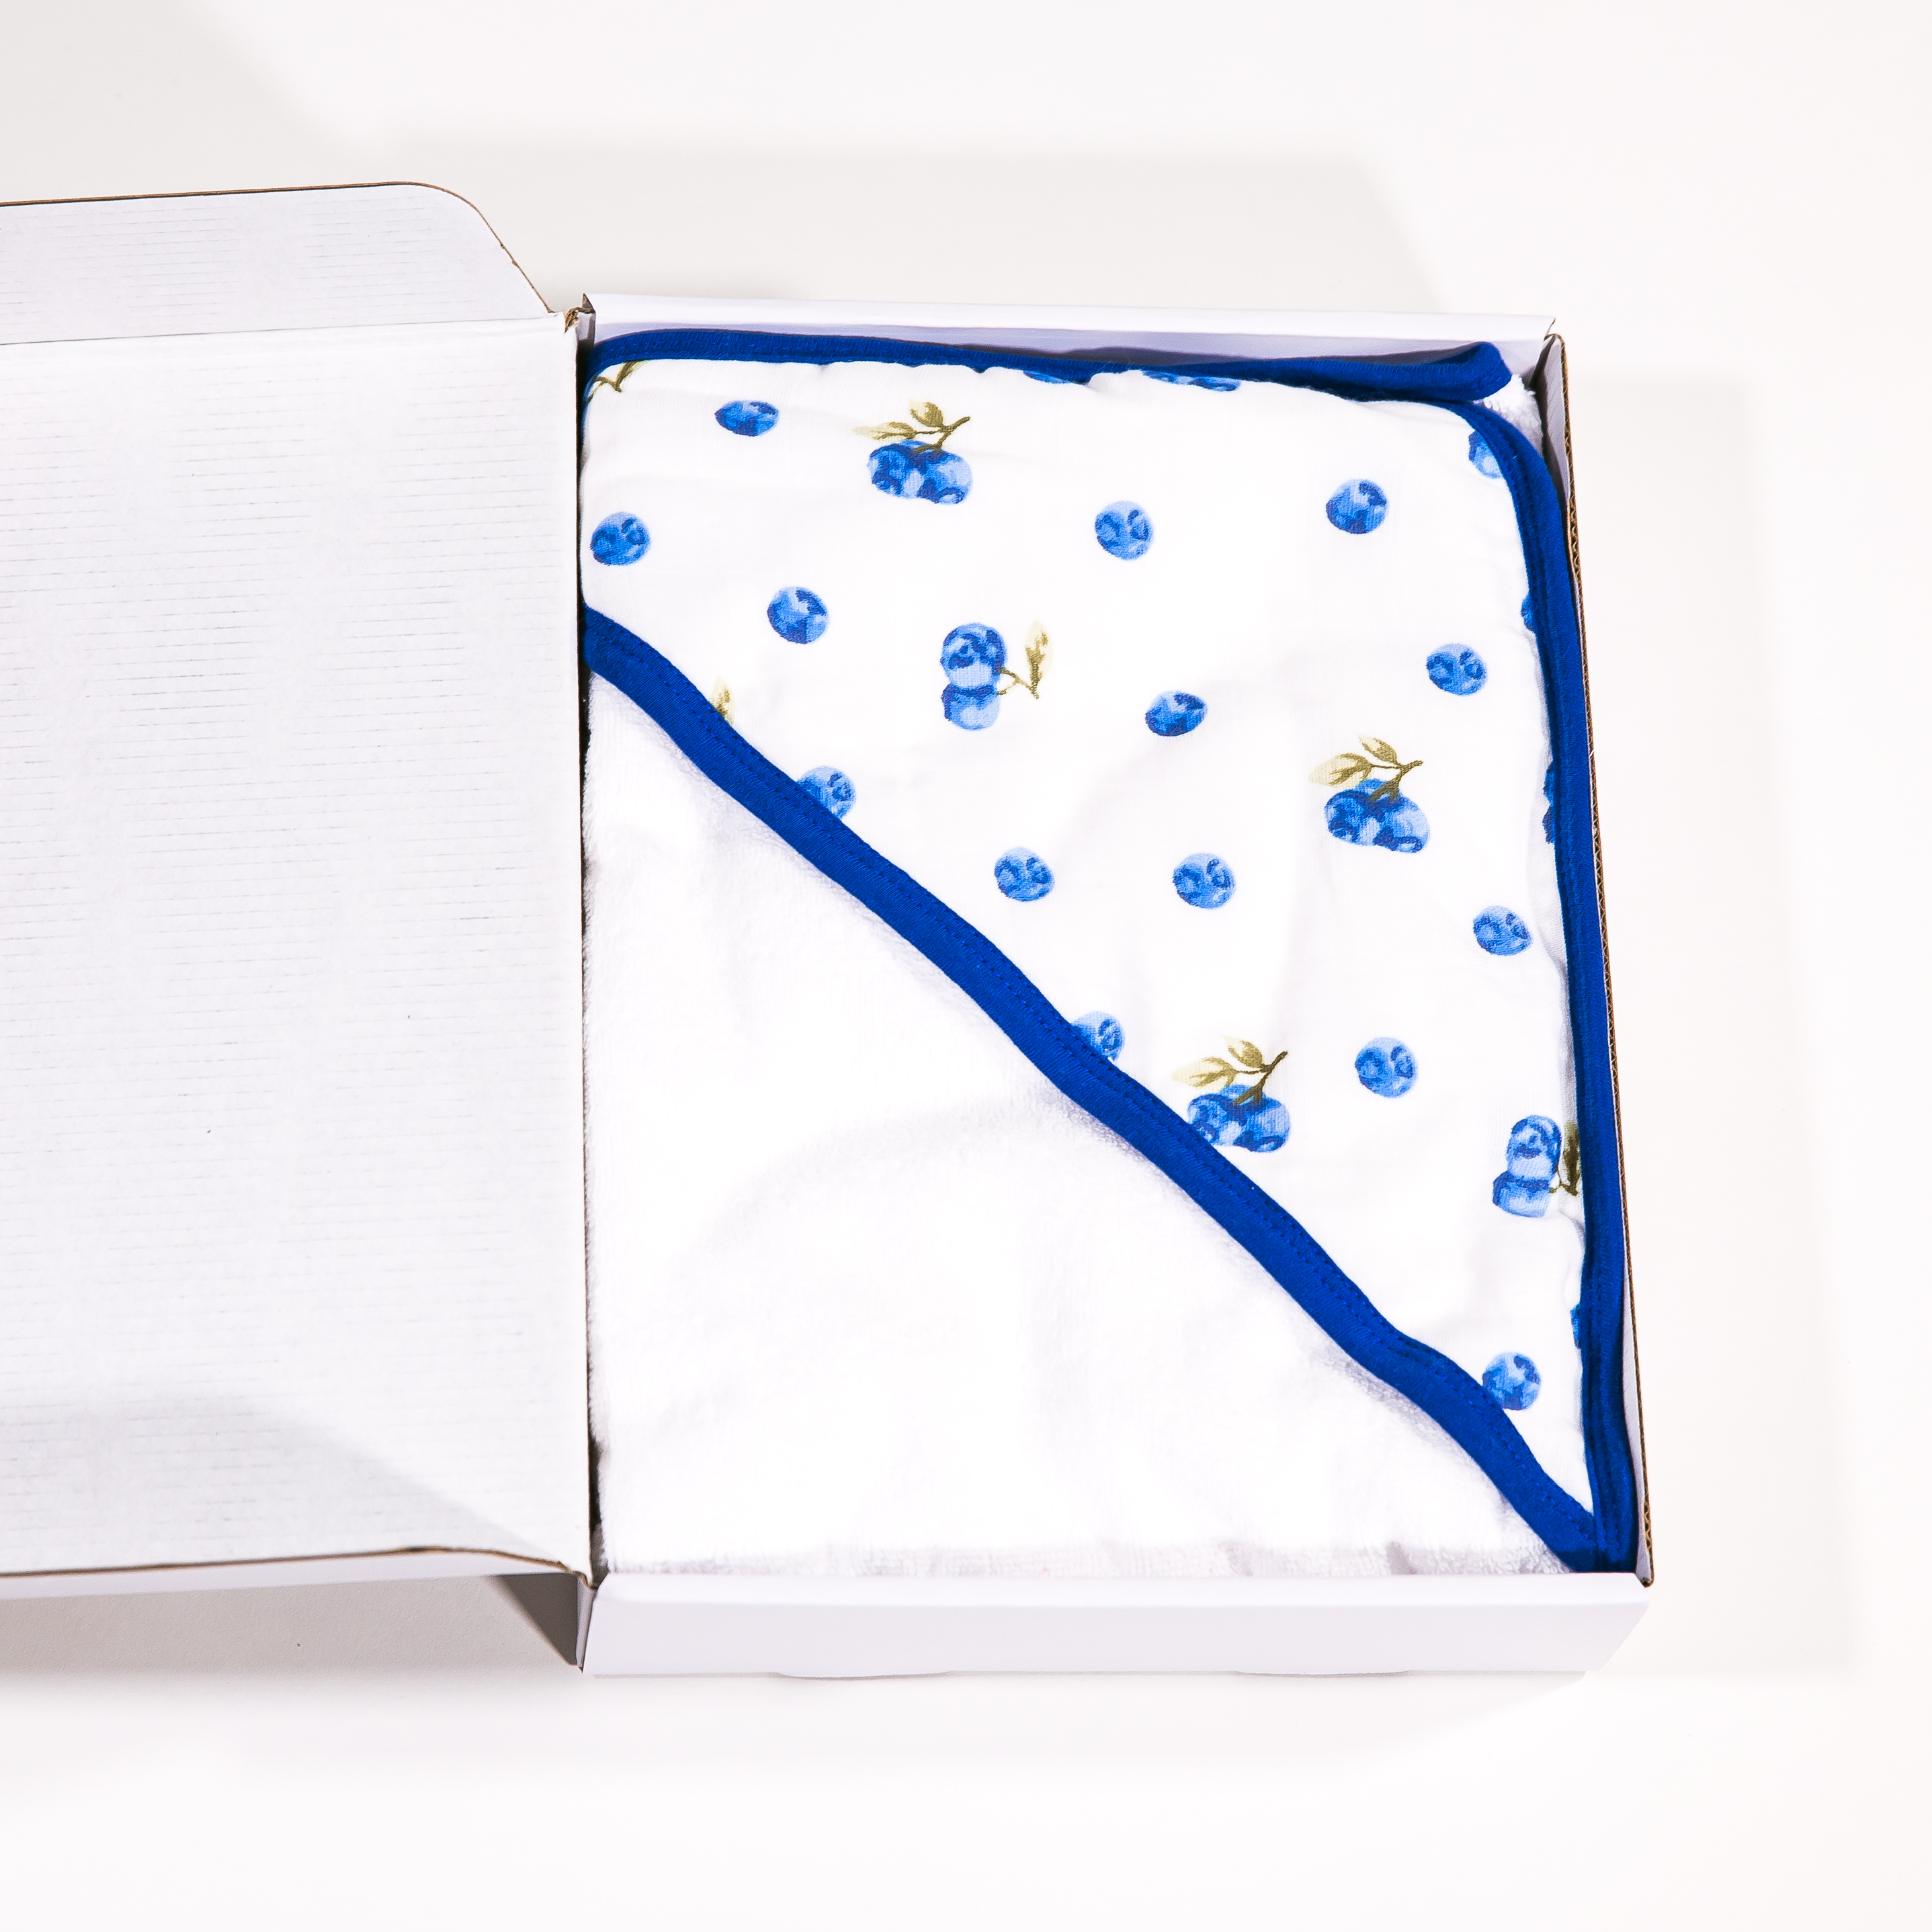 Baby hooded towel made of organic cotton blueberries